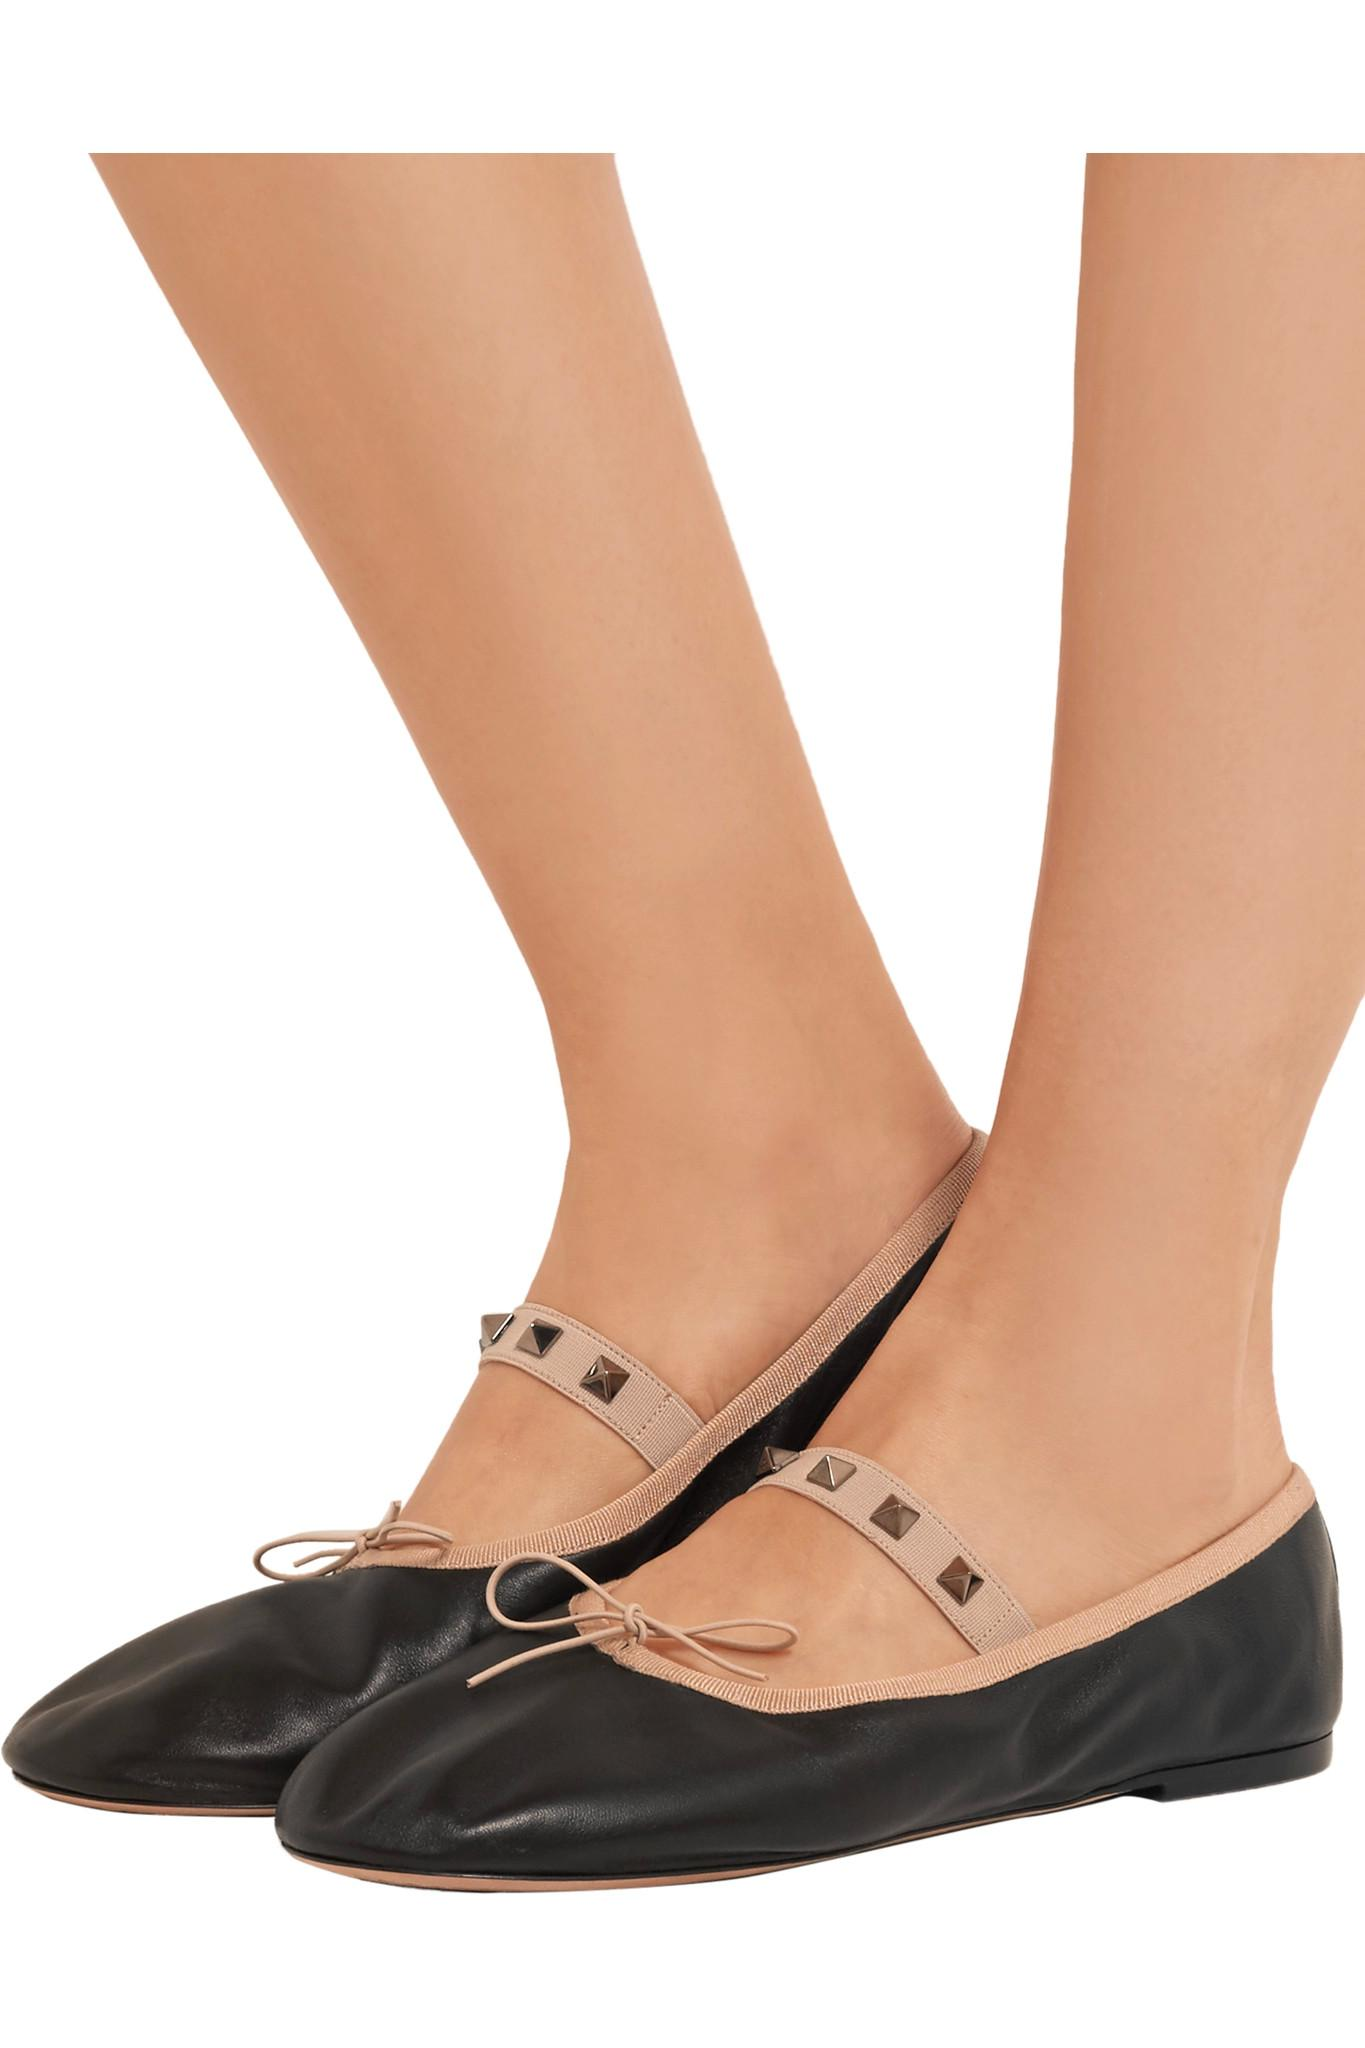 low shipping fee sale online free shipping wide range of Valentino Embellished Ballet Flats genuine buy cheap prices collections cheap price jKP5z1